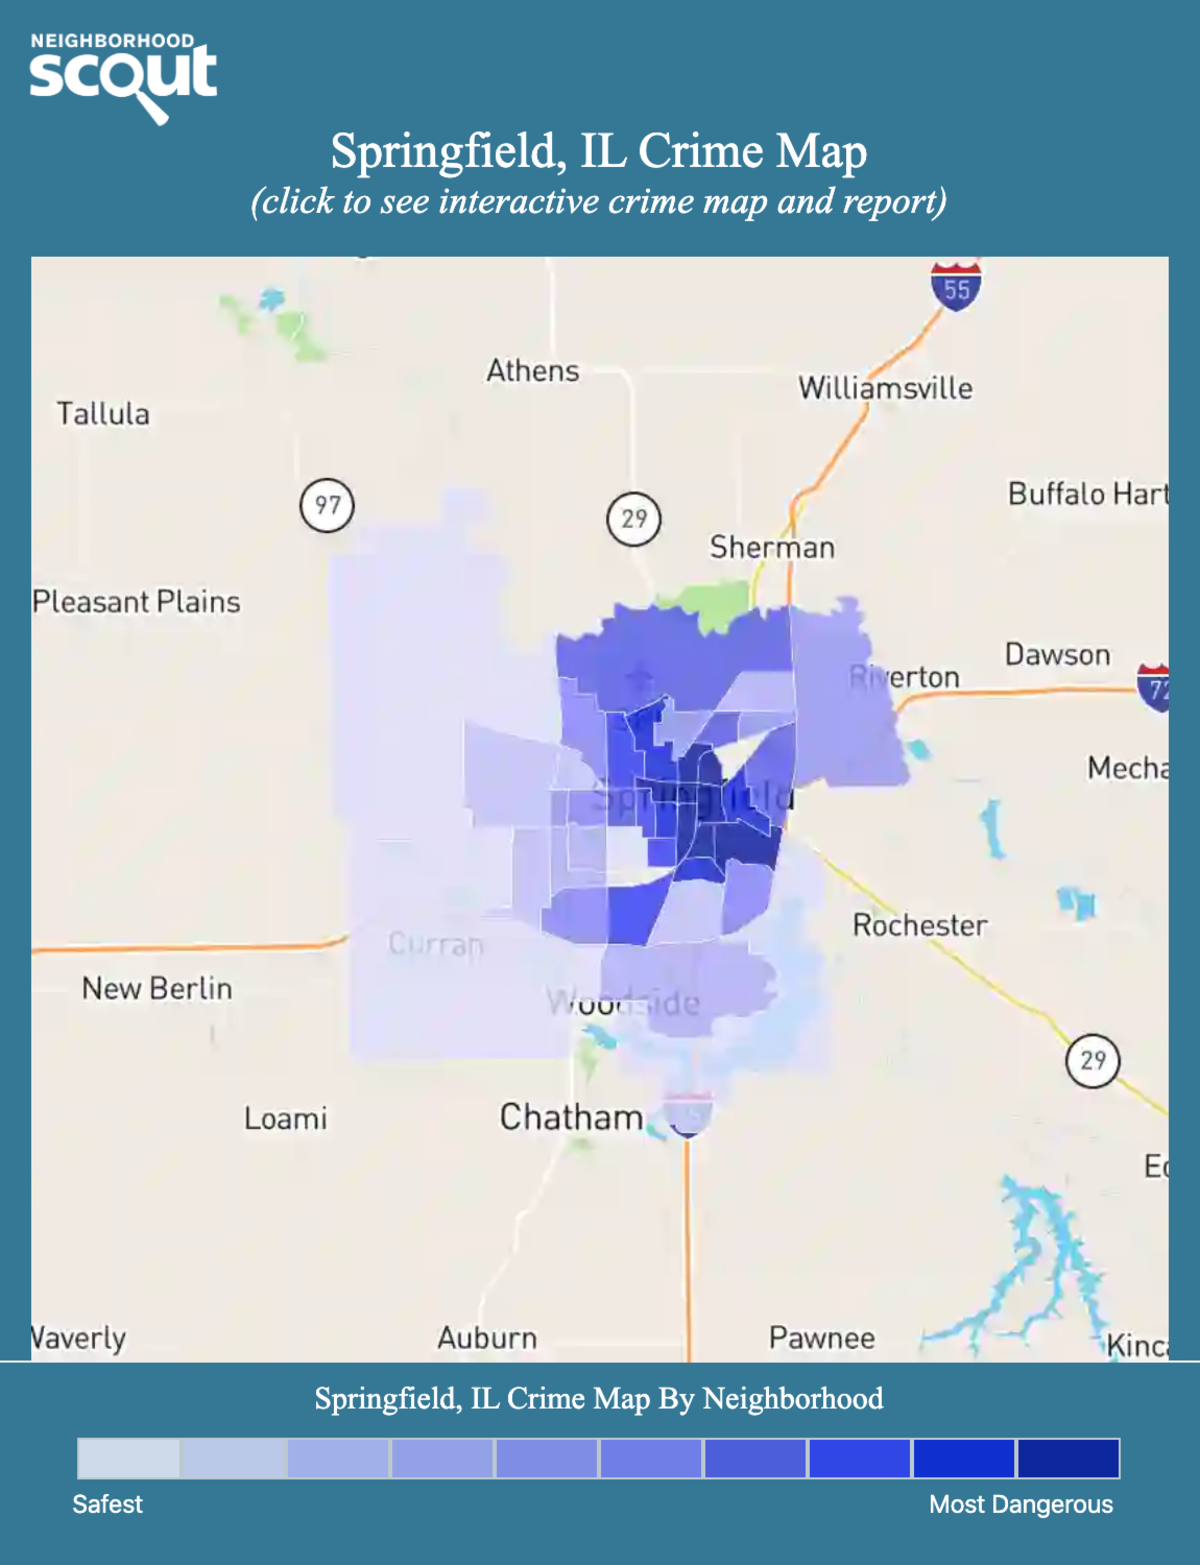 Springfield, Illinois crime map